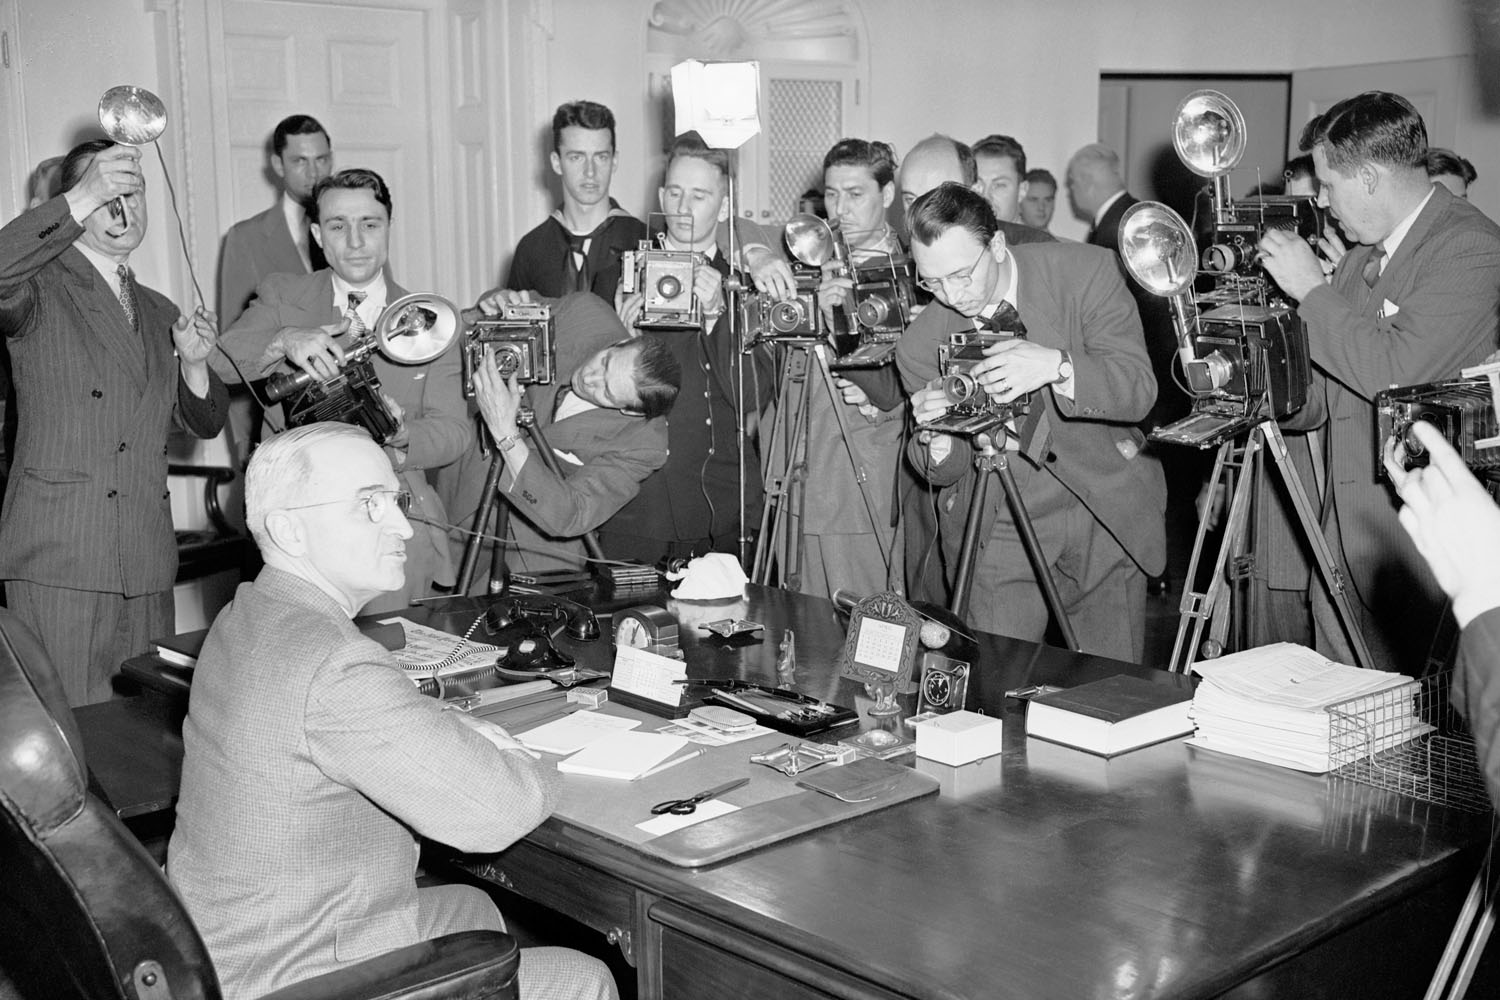 President Harry S. Truman poses at his desk for a group of White House photographers, April 28, 1945.